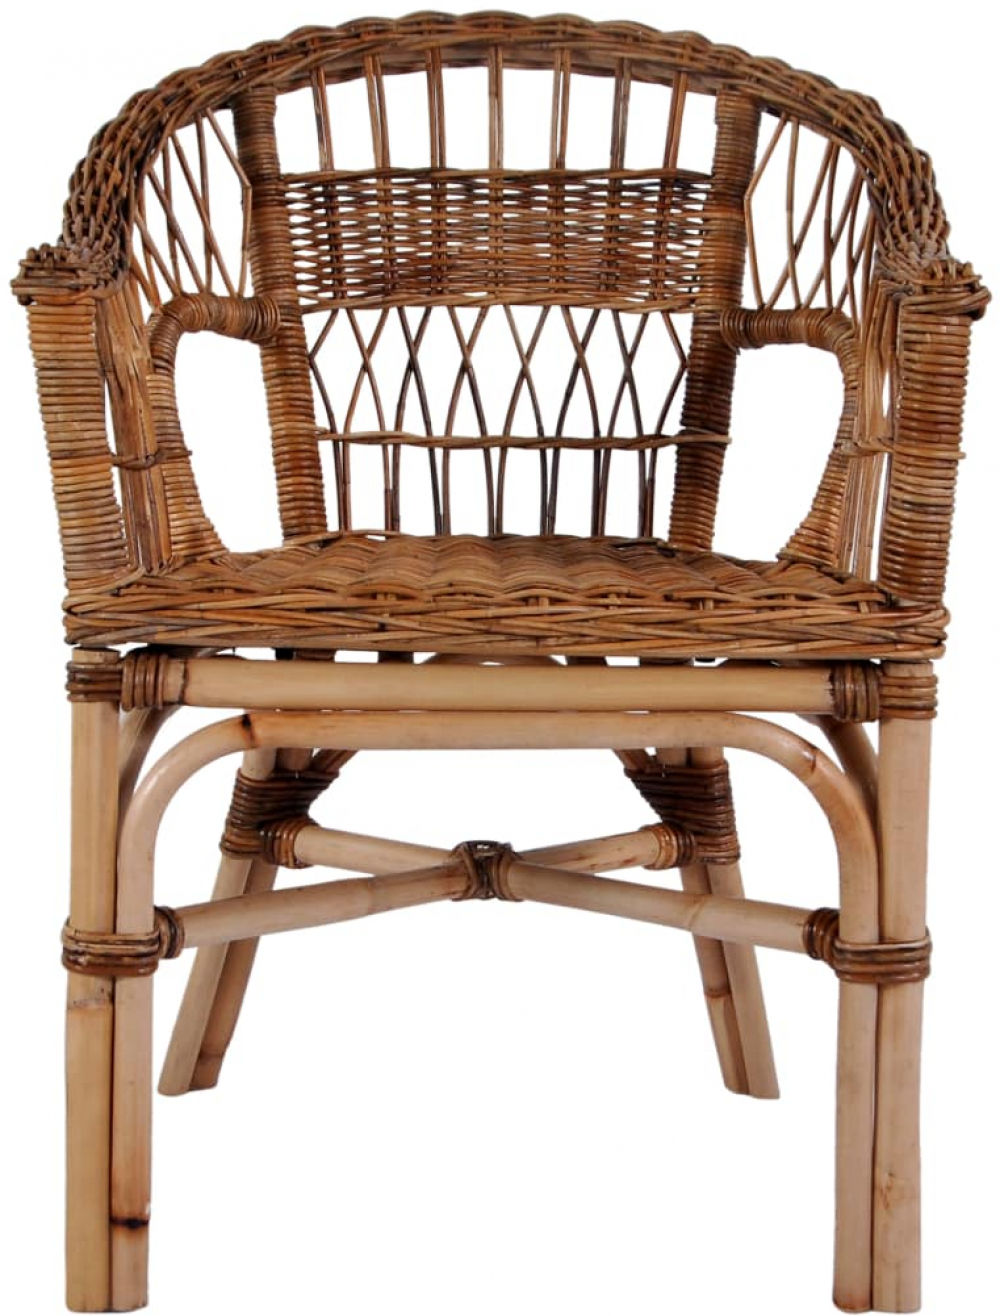 H4home Garden Vintage Rattan Dining Chair Brown